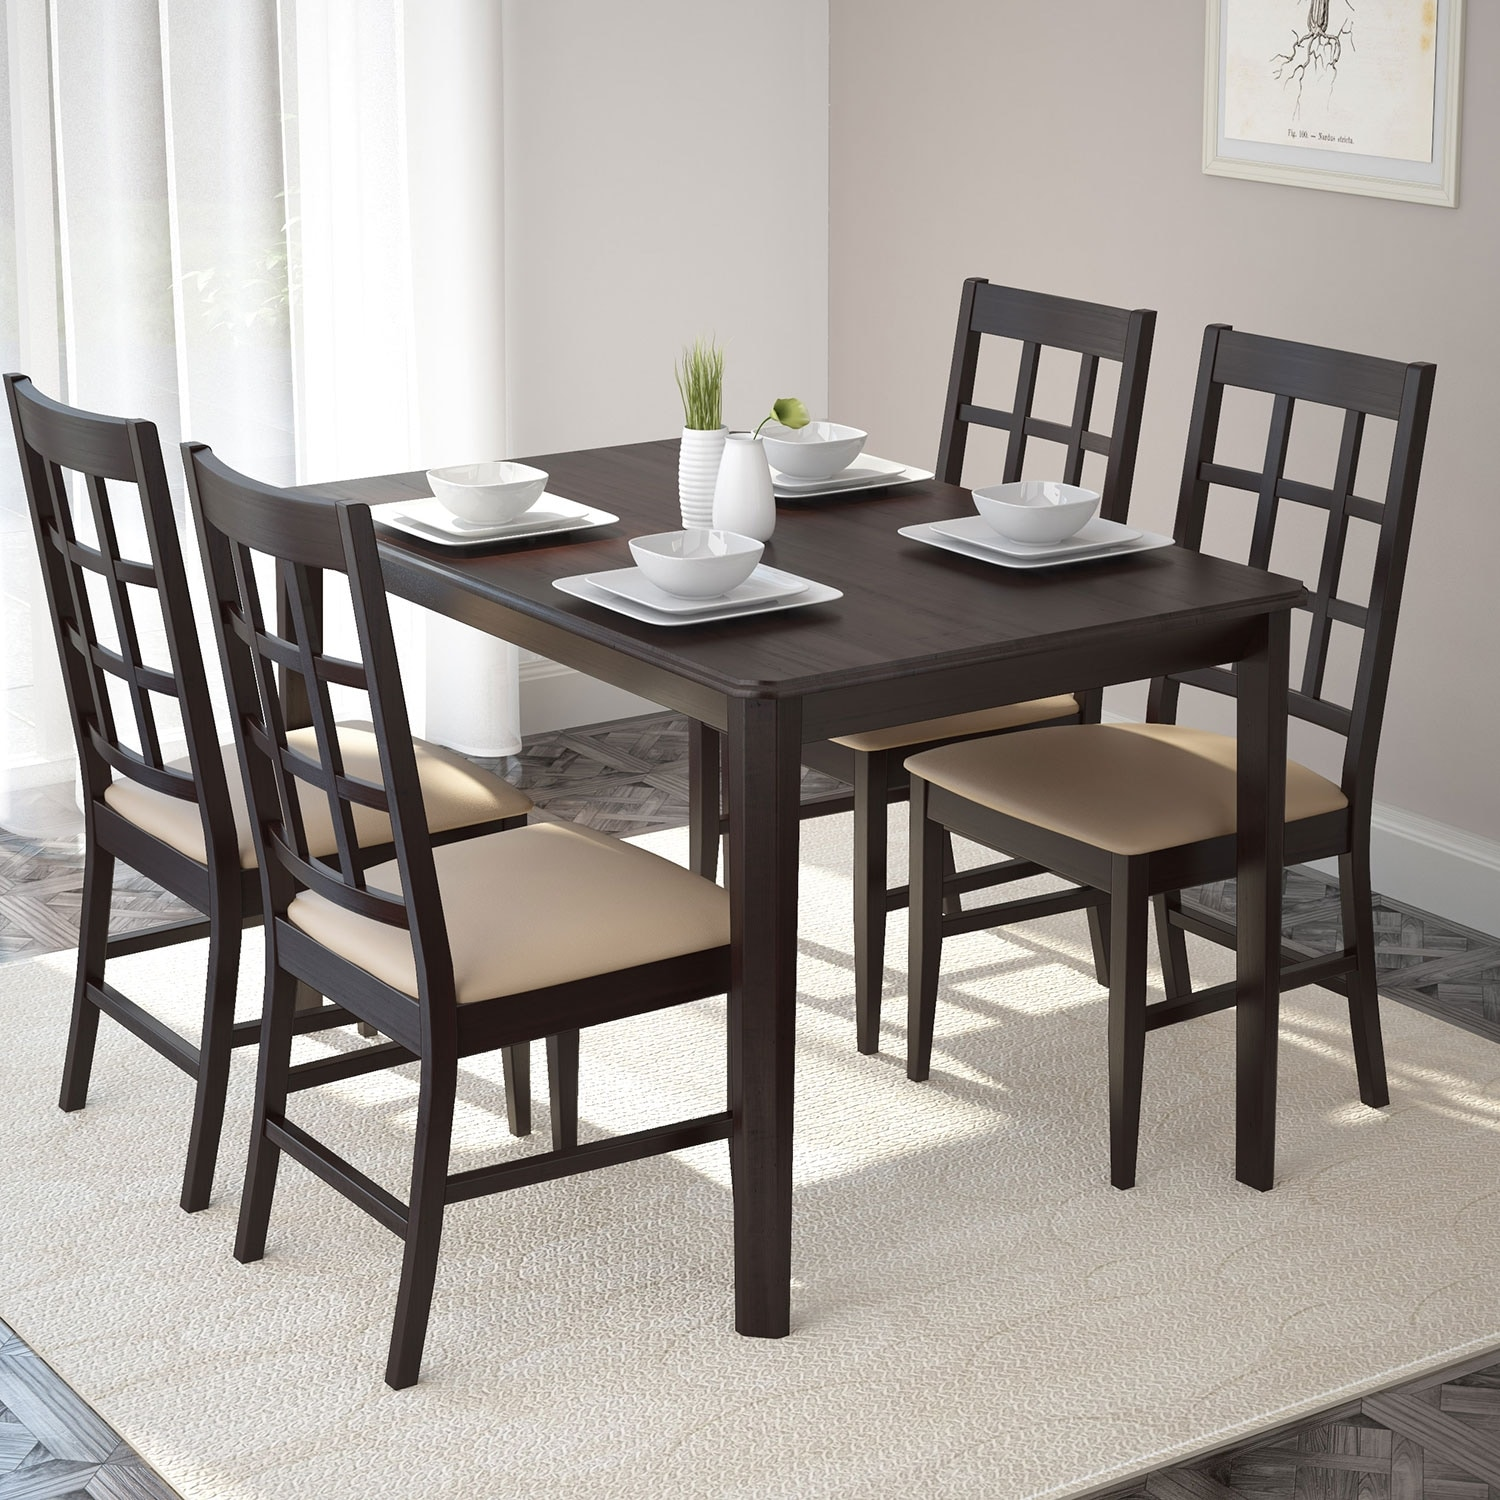 "Dining Room Furniture - Atwood 5-Piece 47.3"" Dining Package with Grey Chairs"